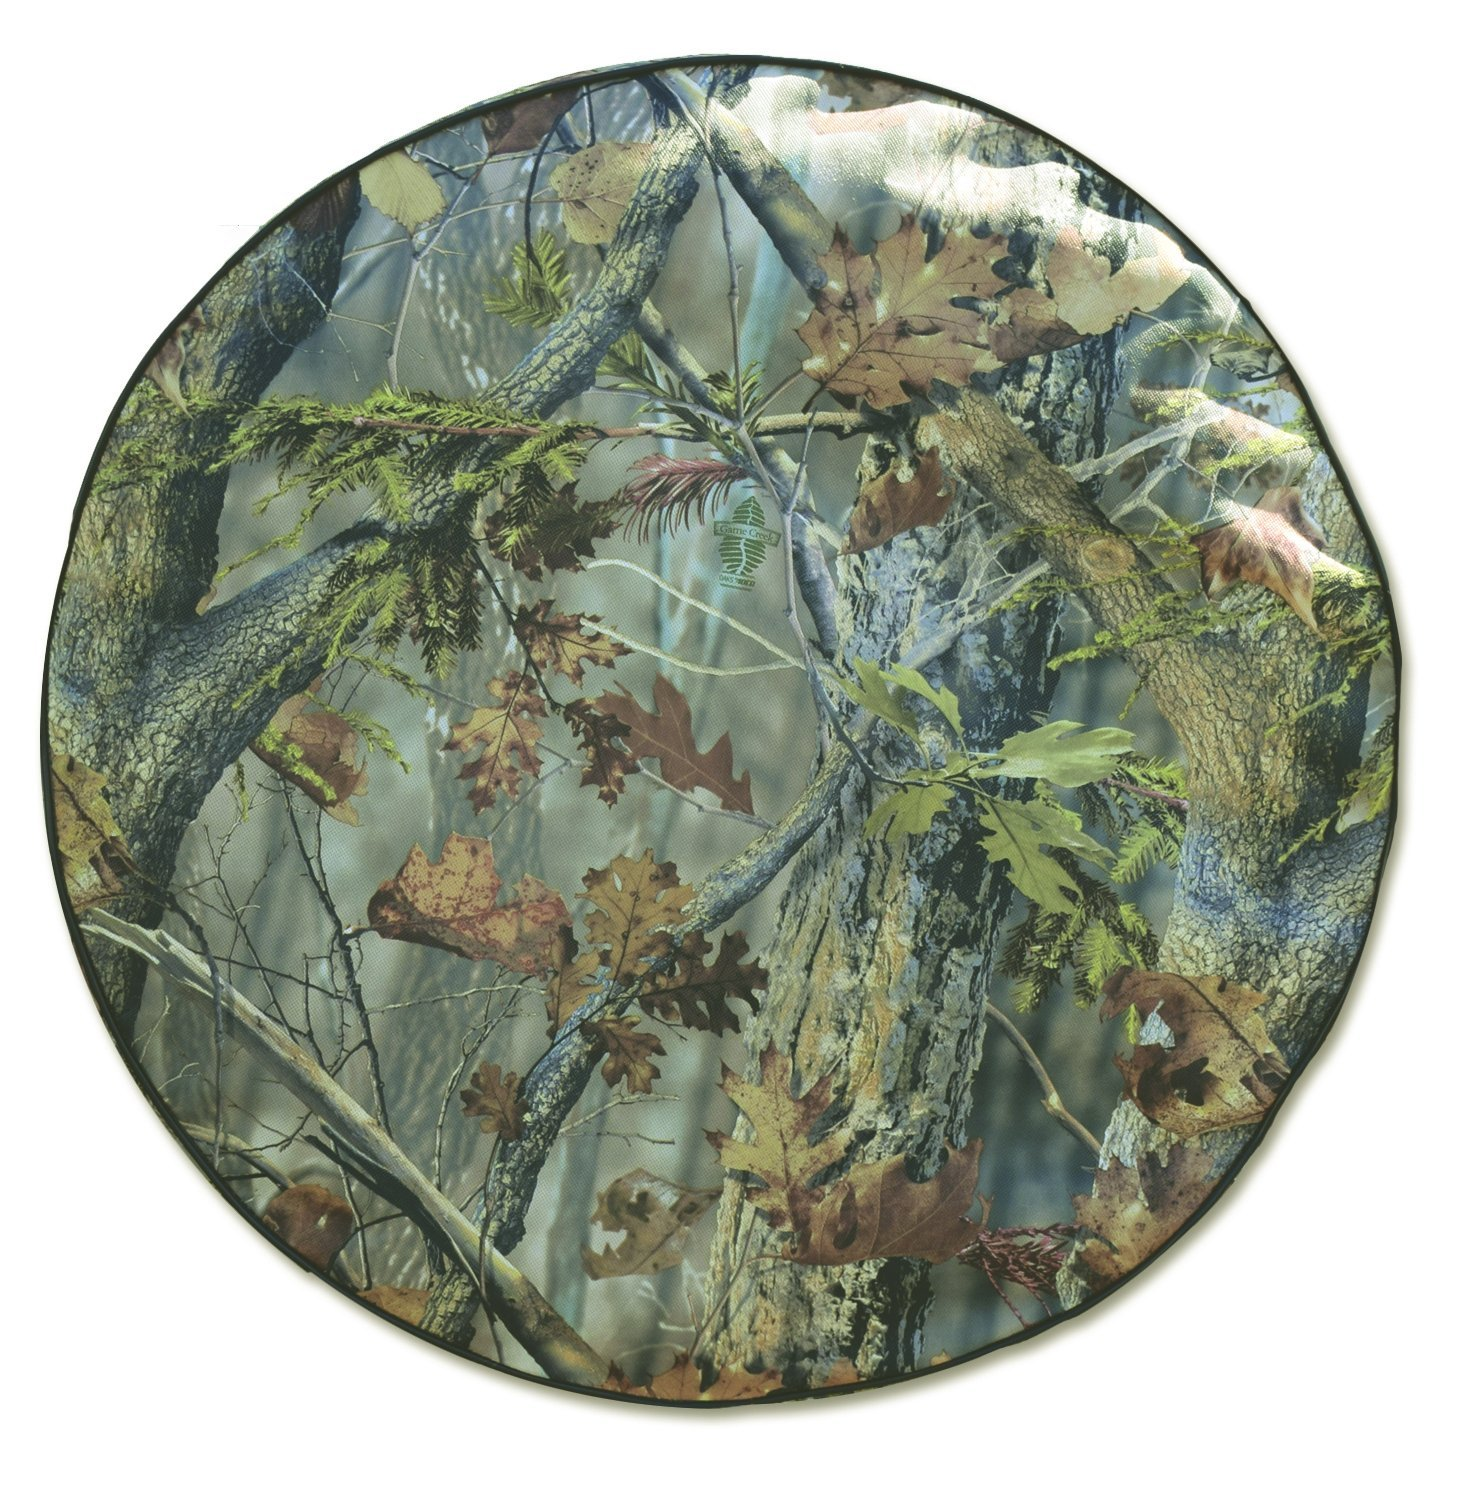 ADCO 8752 Camouflage Game Creek Oaks Spare Tire Cover B, Fits 32 1//4 Diameter Wheel Fits 32 1//4 Diameter Wheel